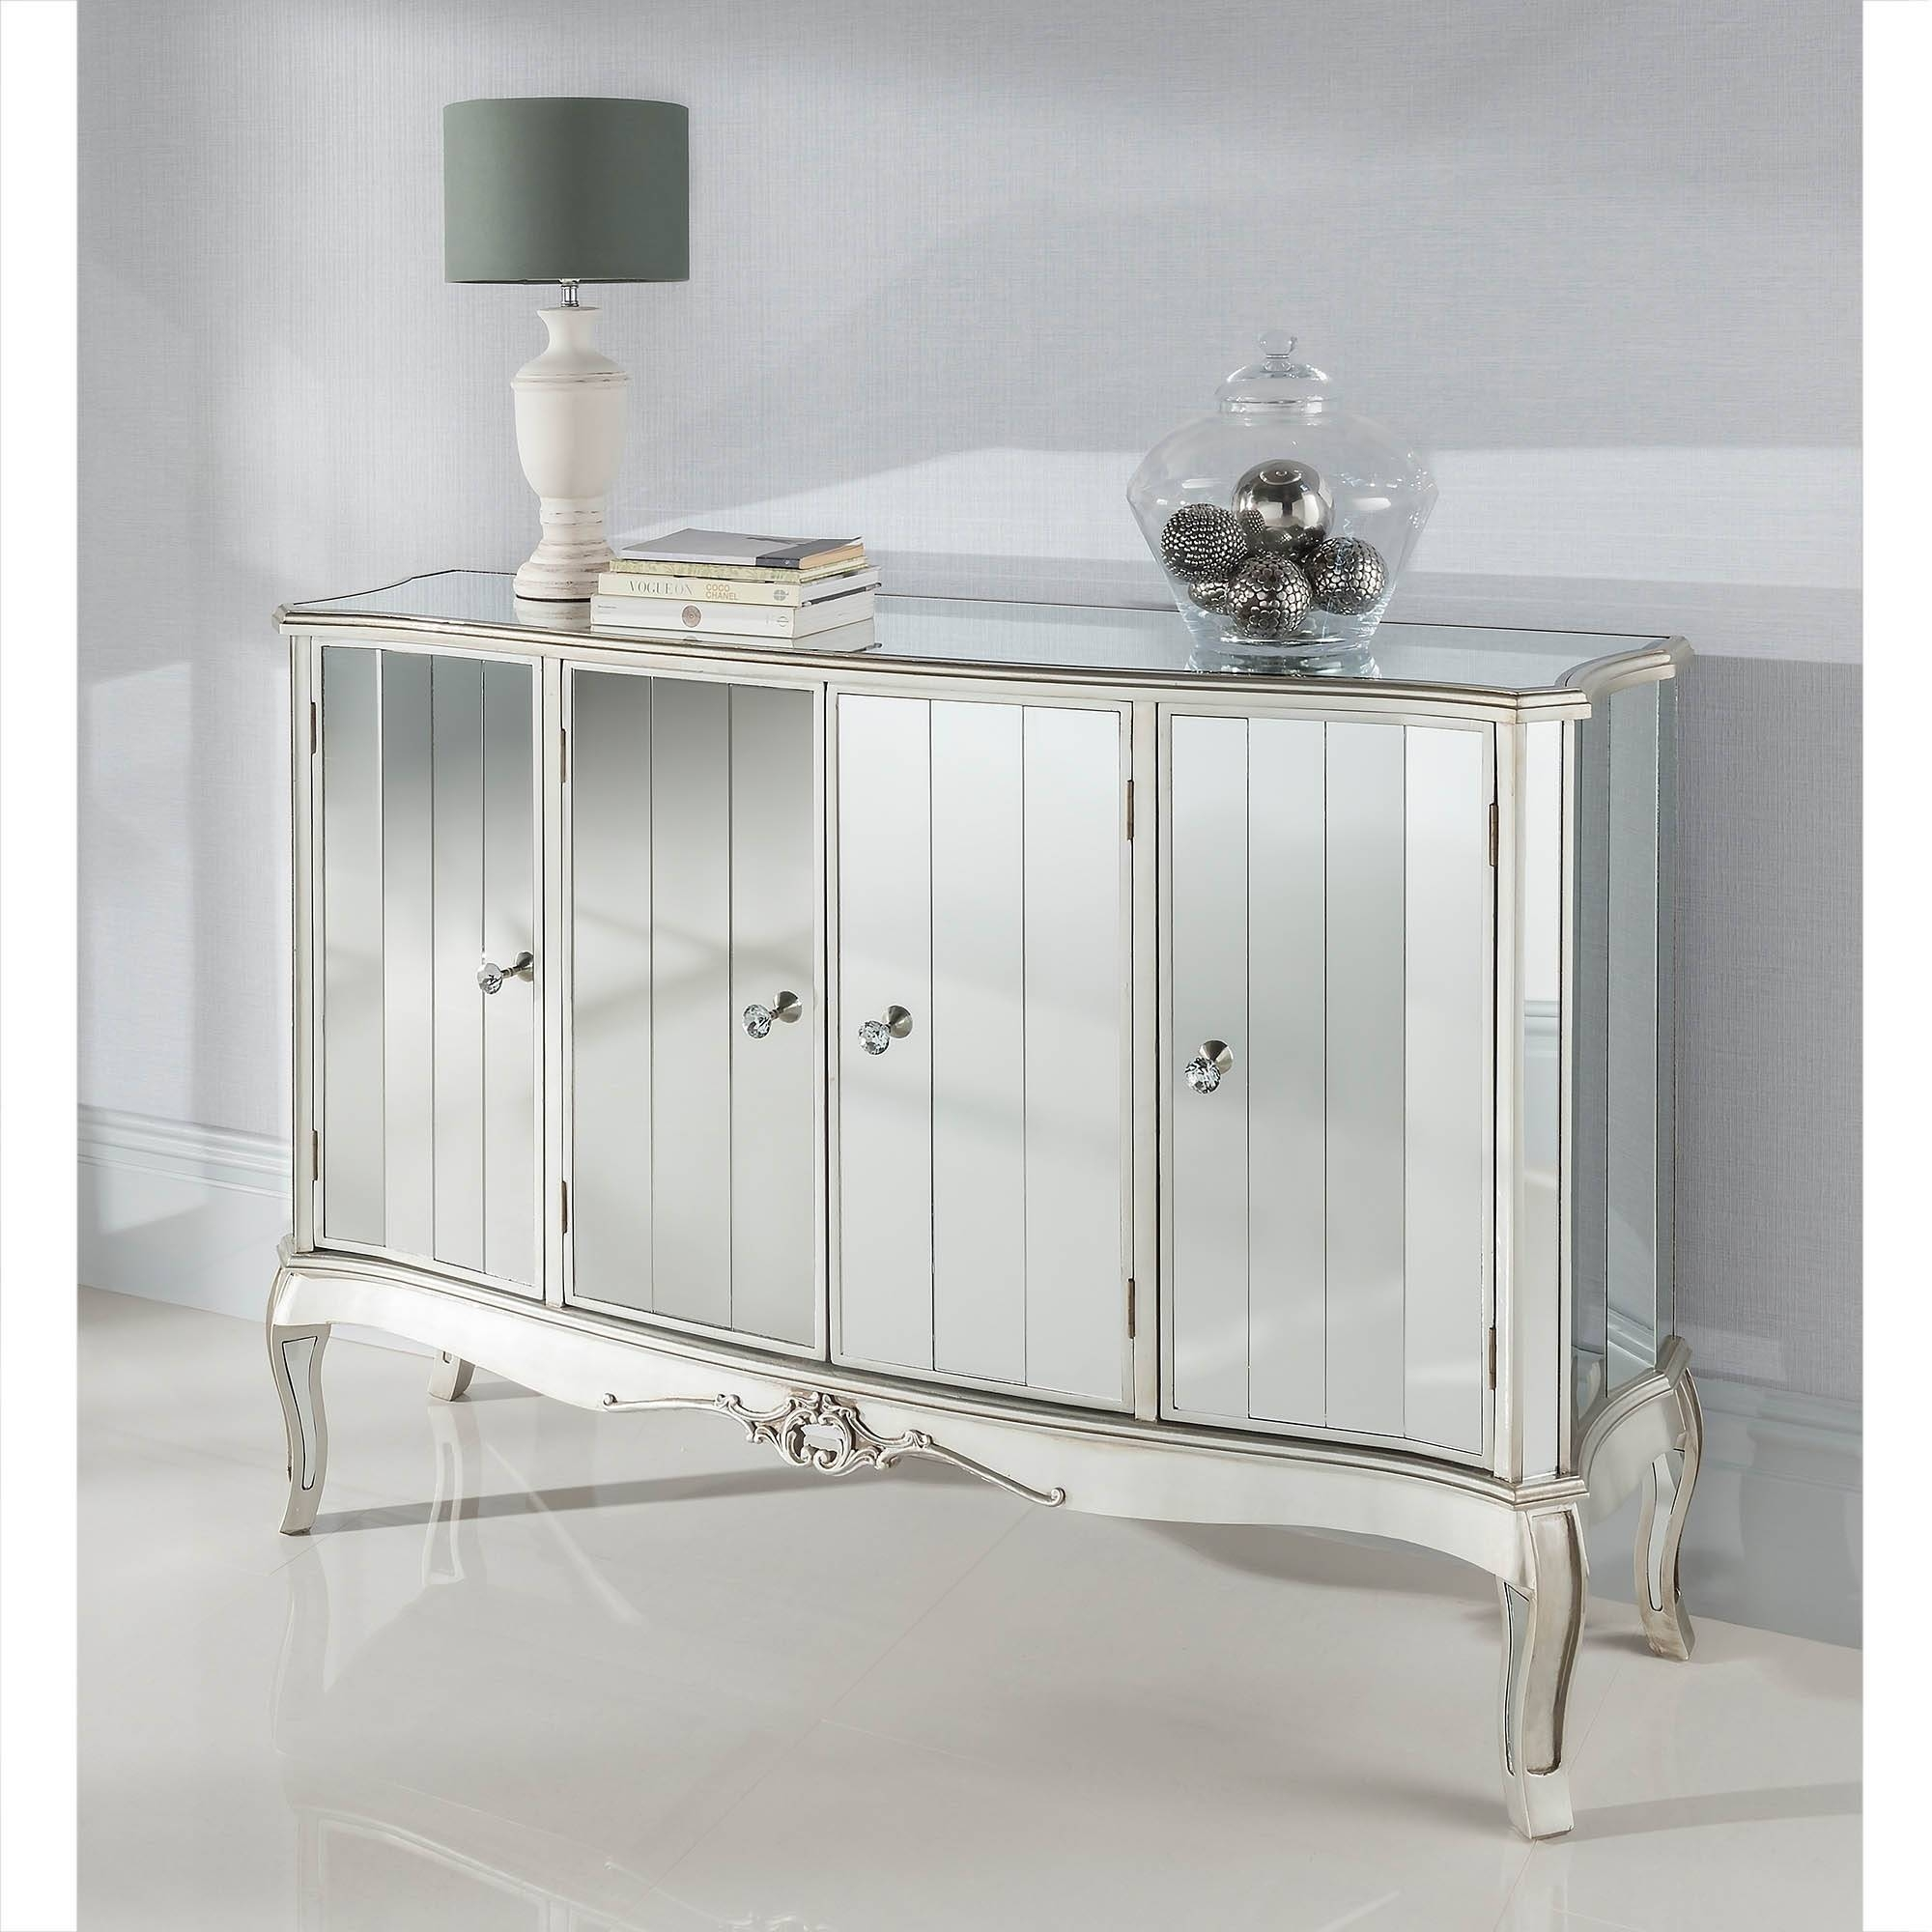 Mirrored Furniture | Mirrored Bedroom Furniture | Homesdirect for Mirrored Sideboard Furniture (Image 8 of 30)